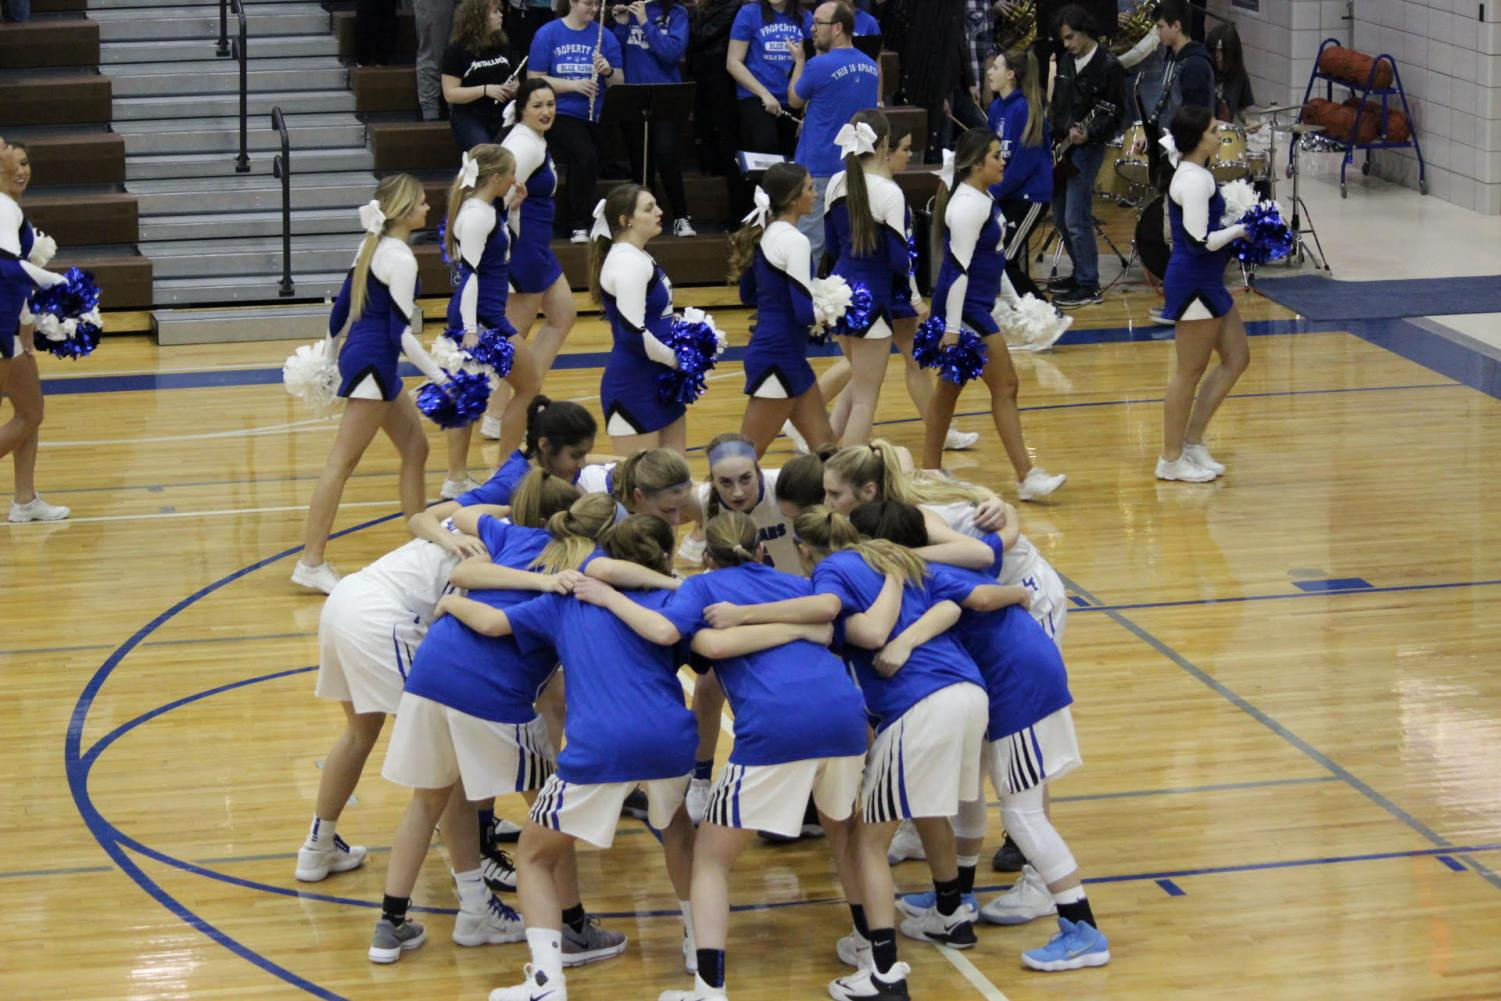 The Lincoln East Girls Varsity basketball team huddle together at the start of the Omaha Burke game on Friday, February 2, at East High School.